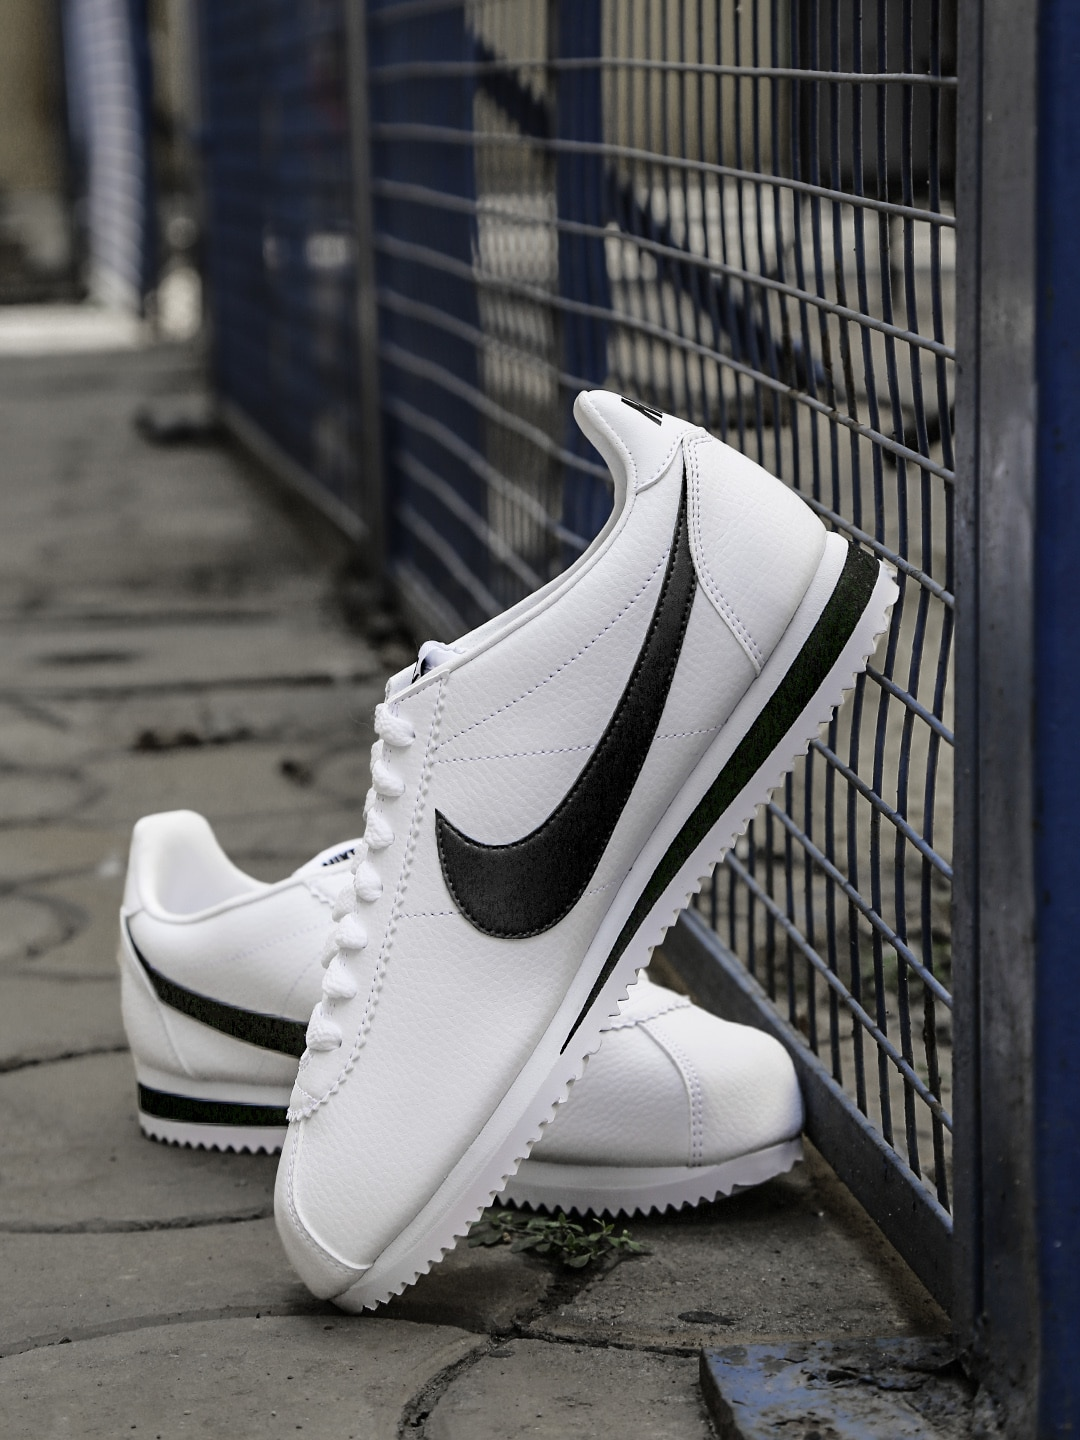 best sneakers 71f45 616c7 Nike Cortez Casual Shoes - Buy Nike Cortez Casual Shoes online in India